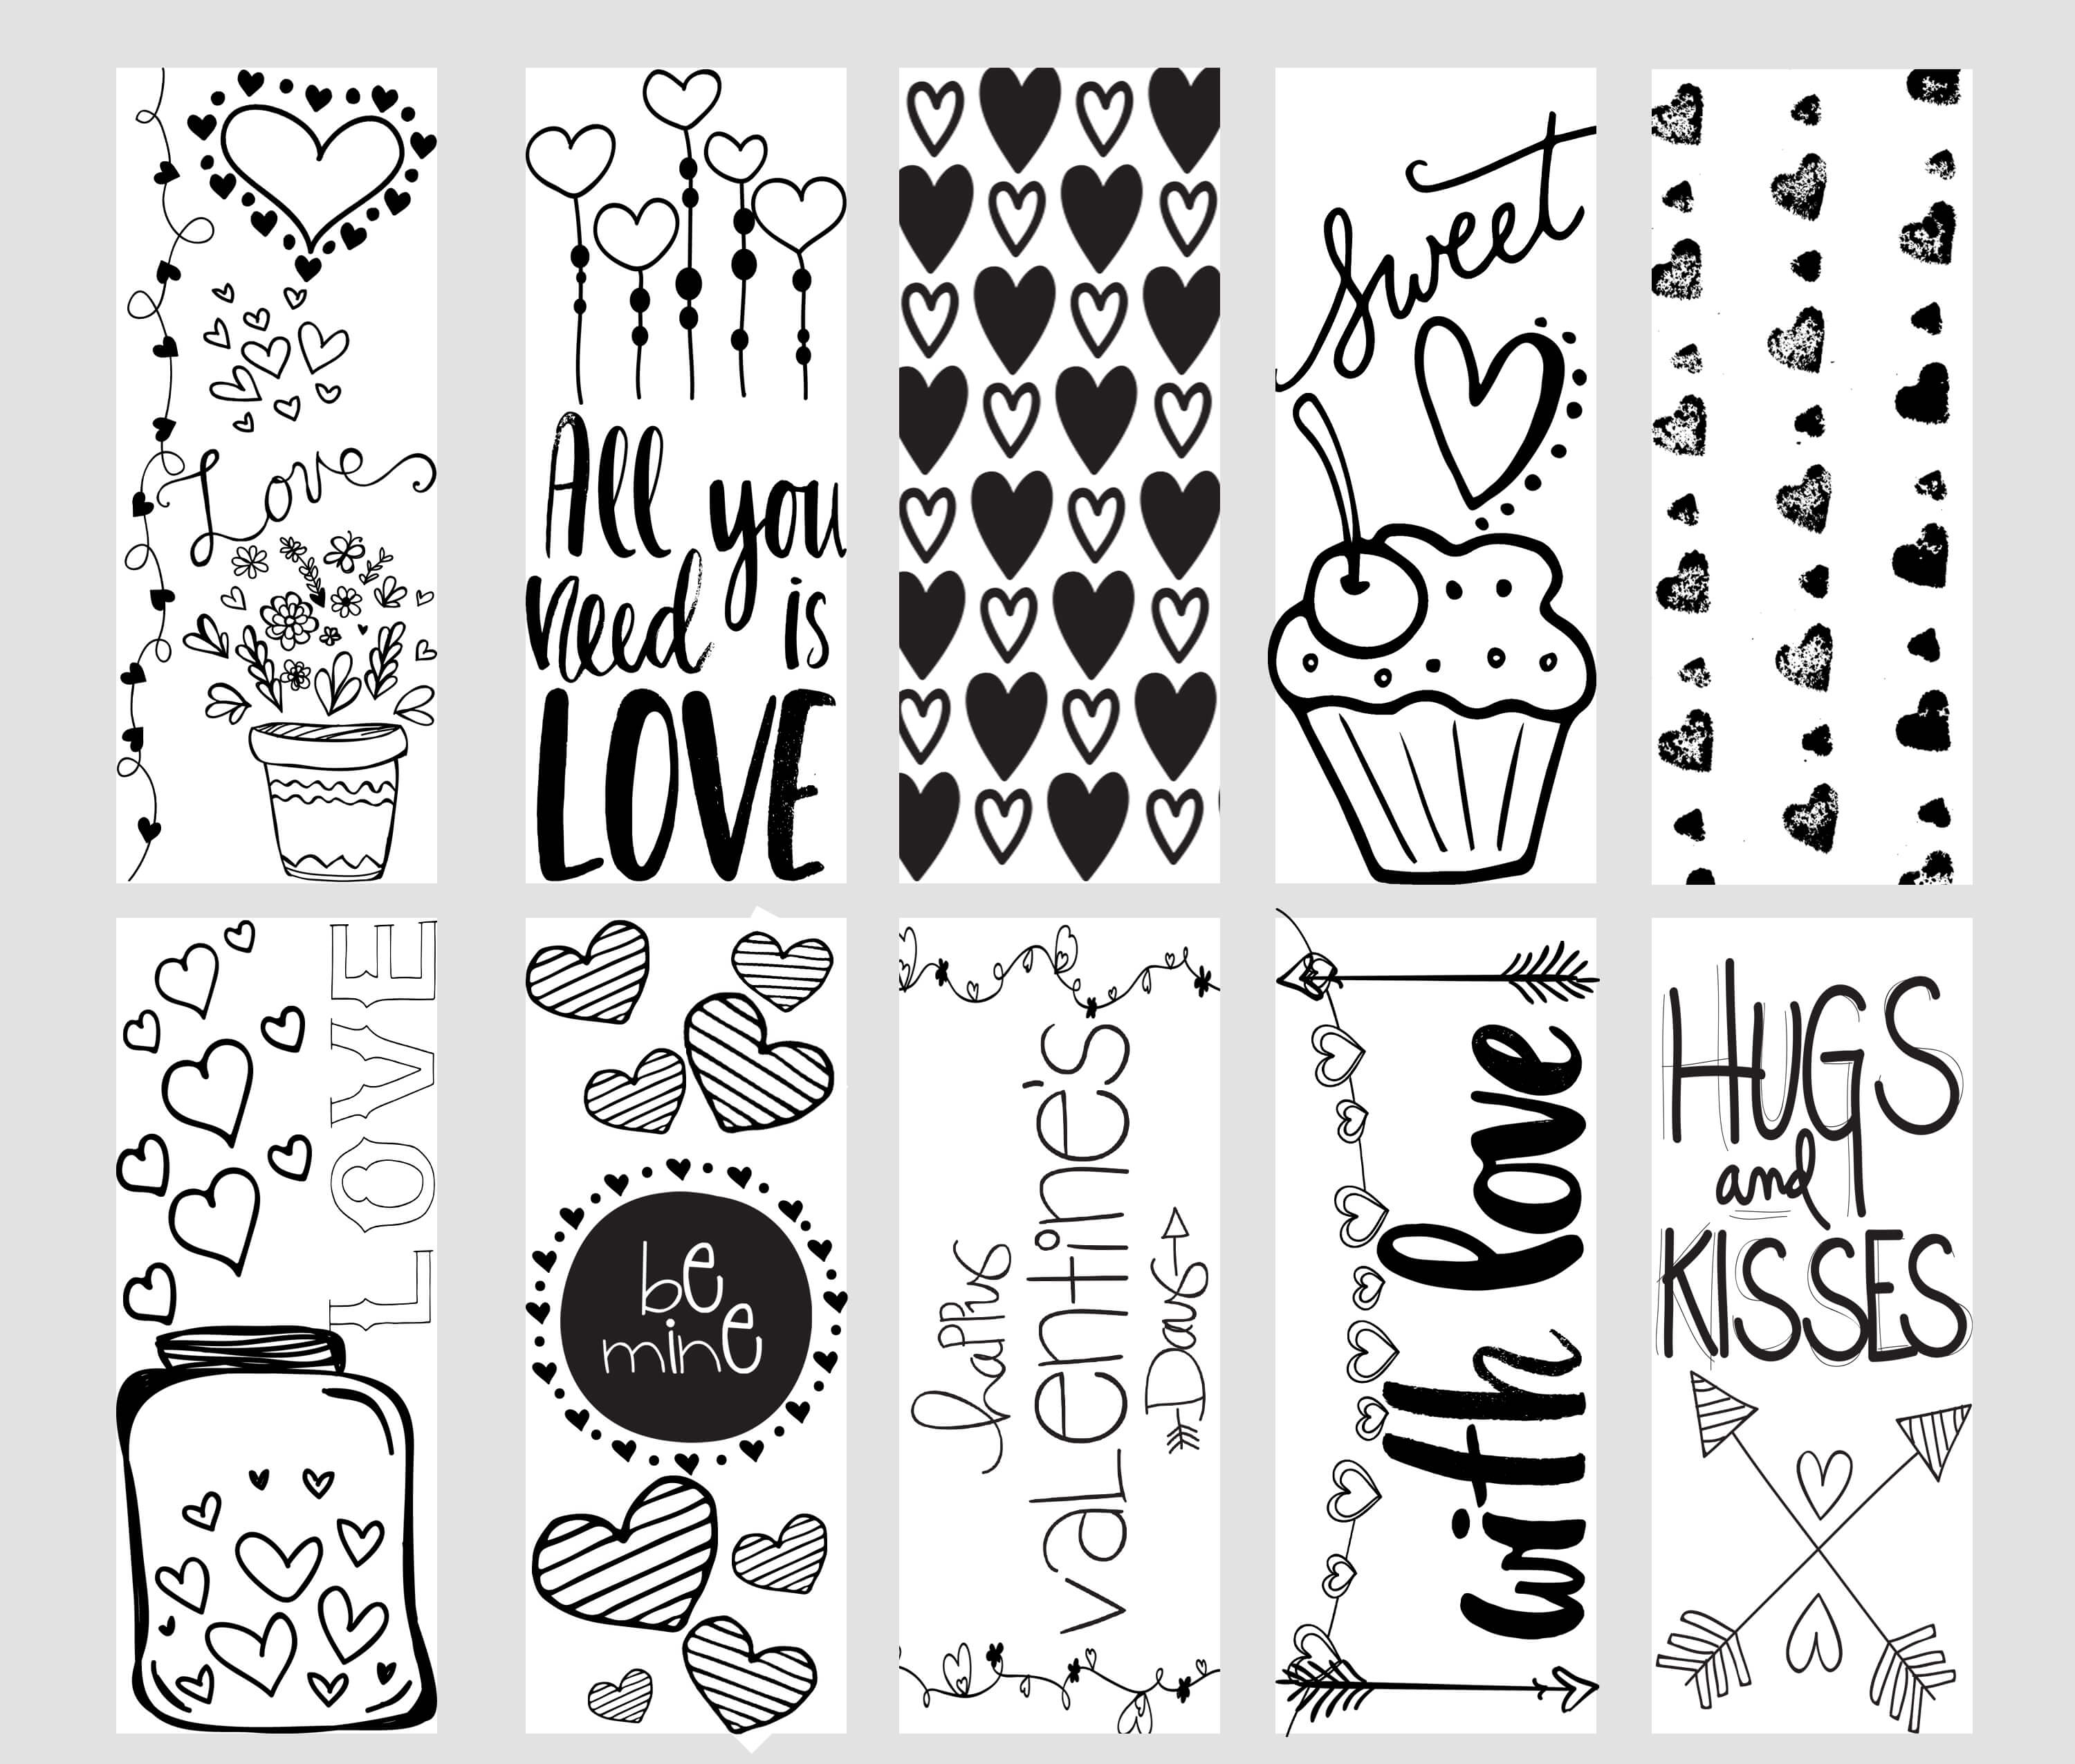 Valentine Printable Coloring Page Bookmarks - Free Printable Bookmarks To Color